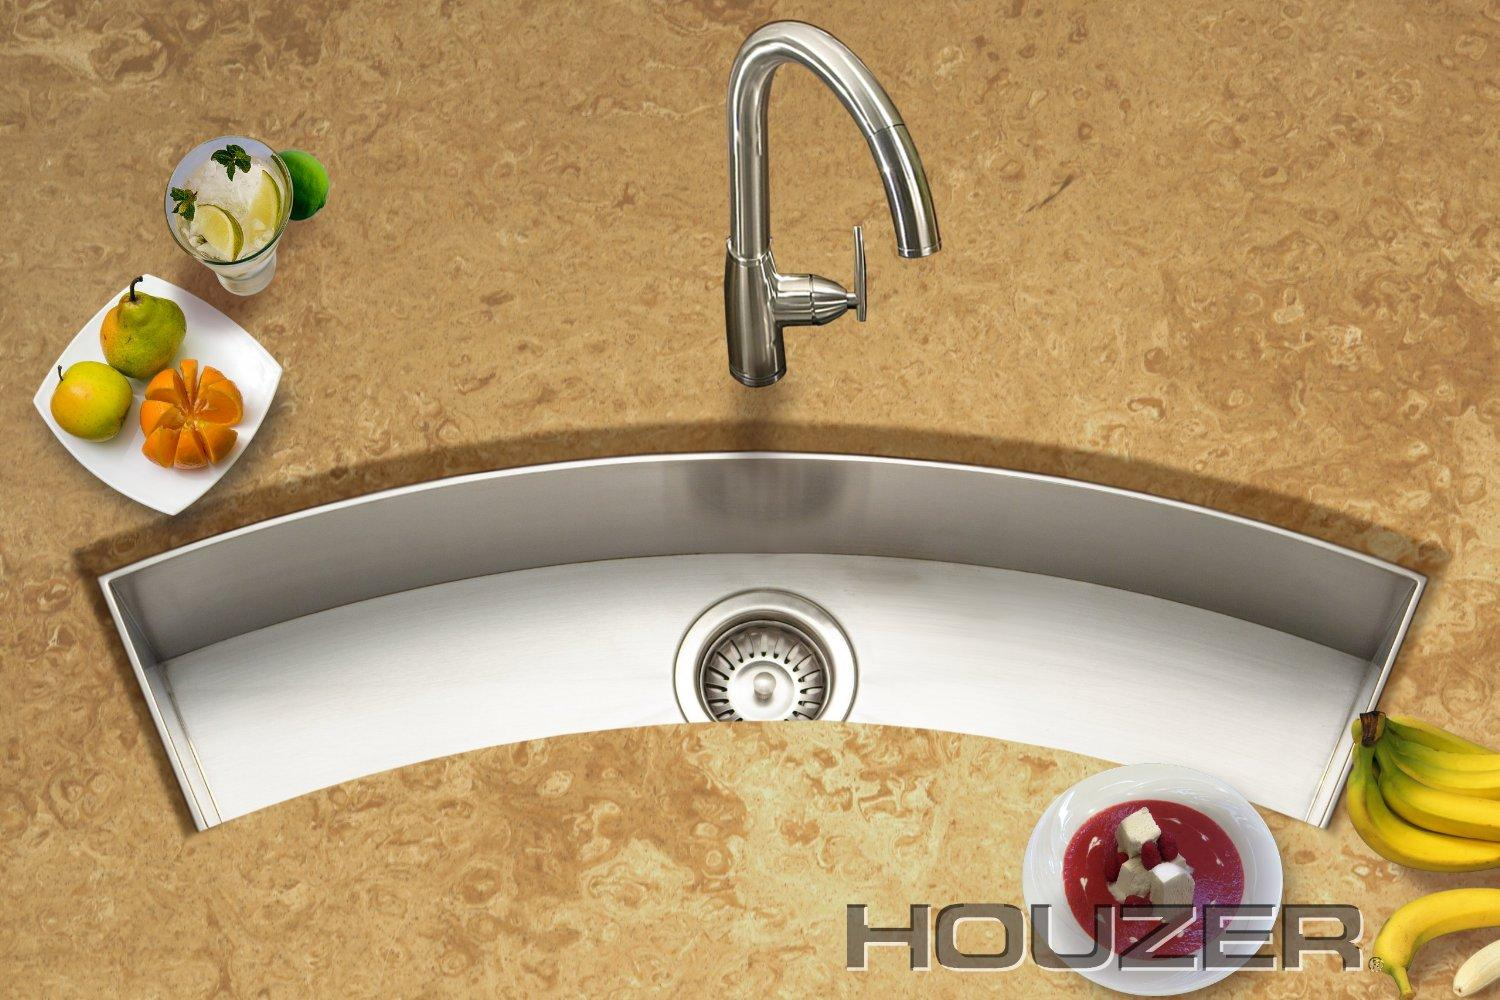 Houzer Sinks : about houzer houzer sinks complement your home and your lifestyle look ...